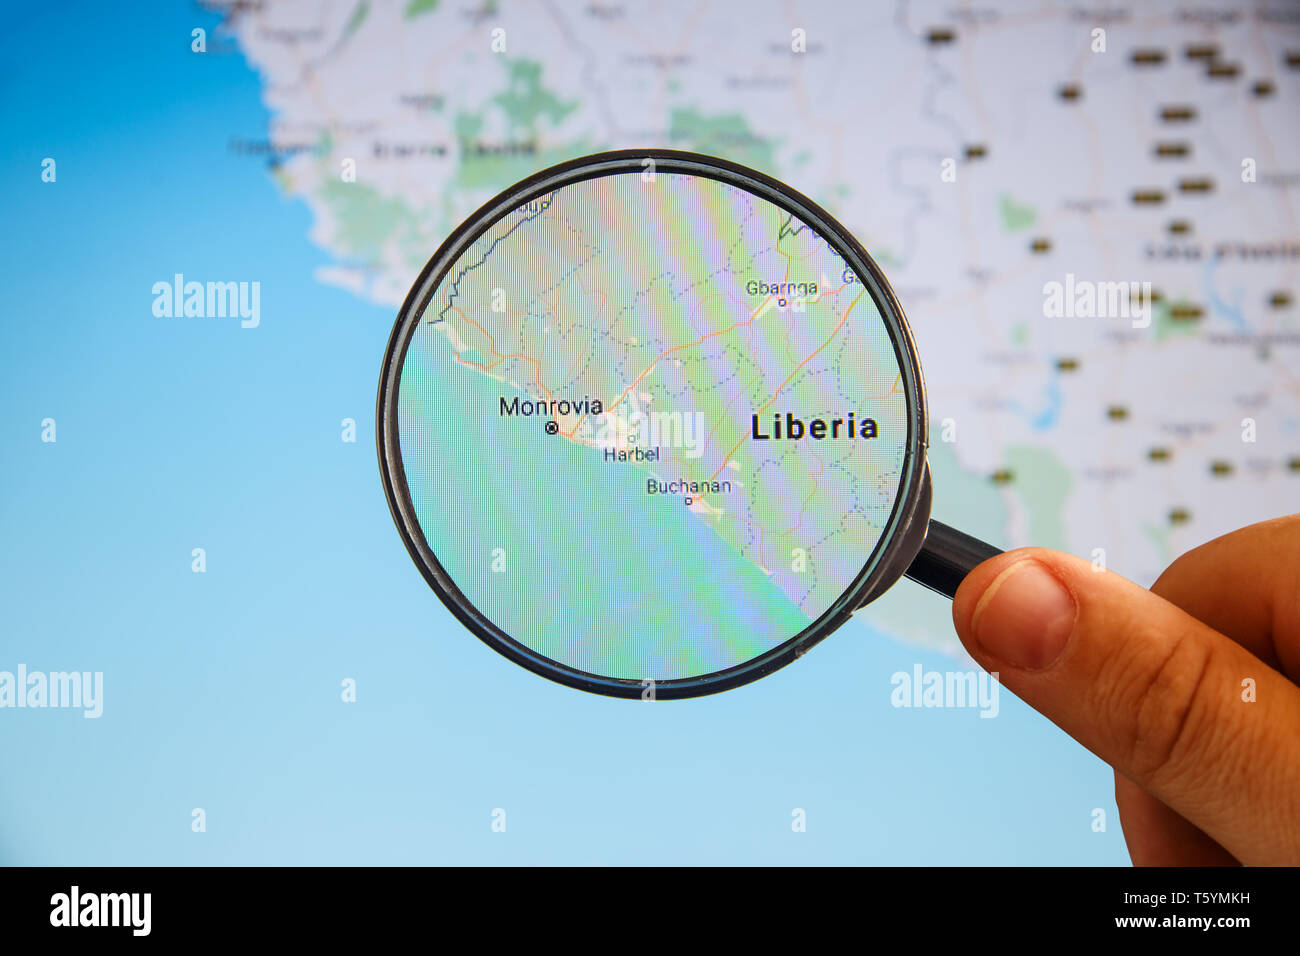 Monrovia, Liberia. Political map. City visualization illustrative concept on display screen through magnifying glass in the hand. - Stock Image